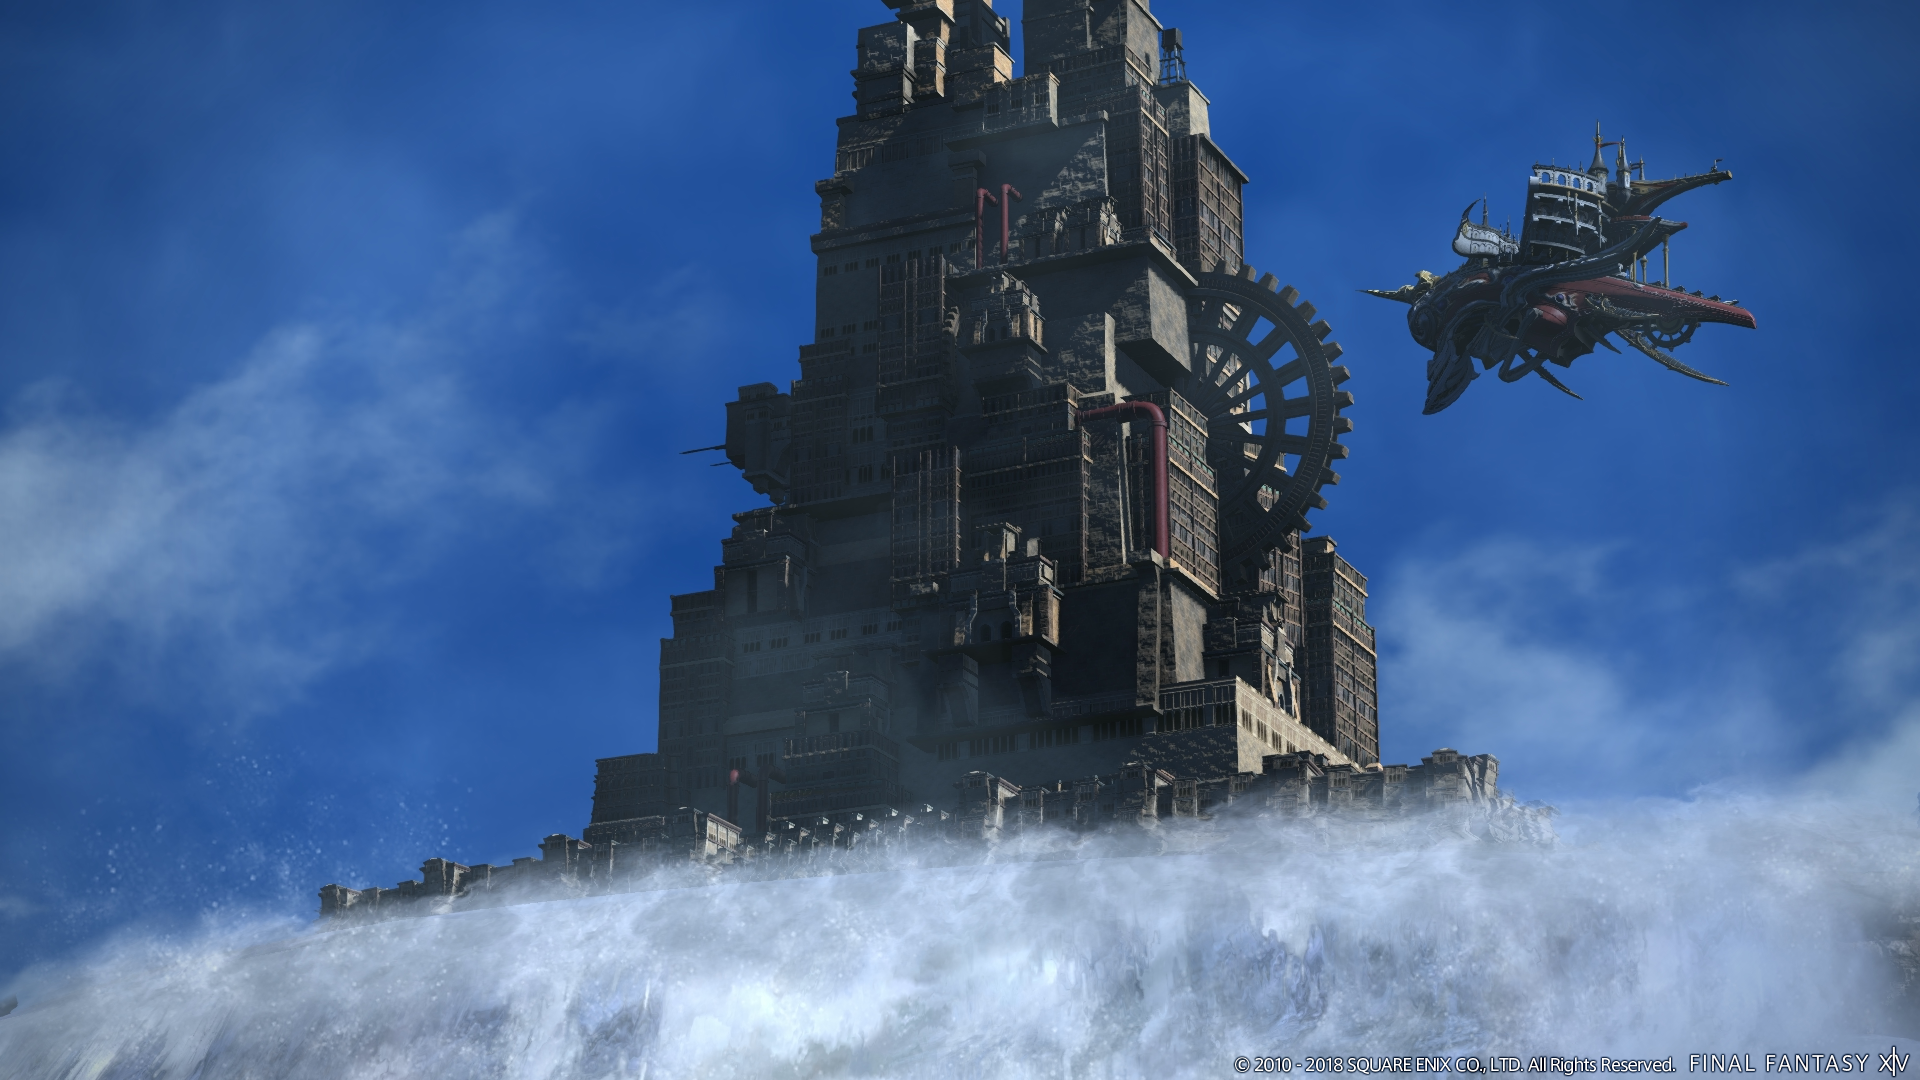 Final Fantasy XIV previews the Ridorana Lighthouse of patch 4 3